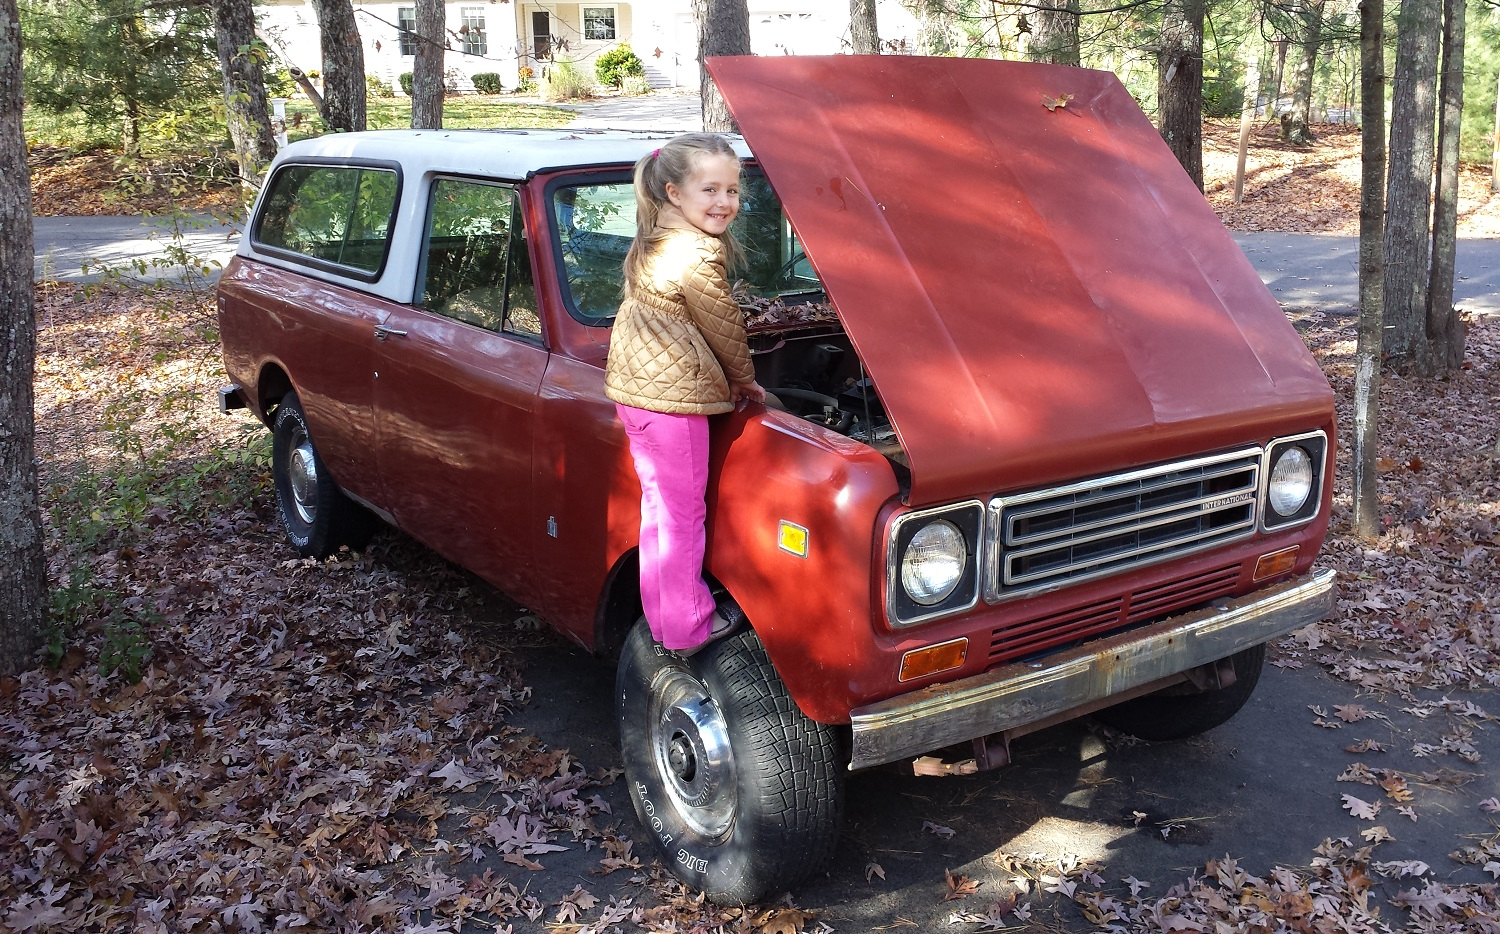 1978 International Harvester Scout to be reborn as ultimate beach wagon